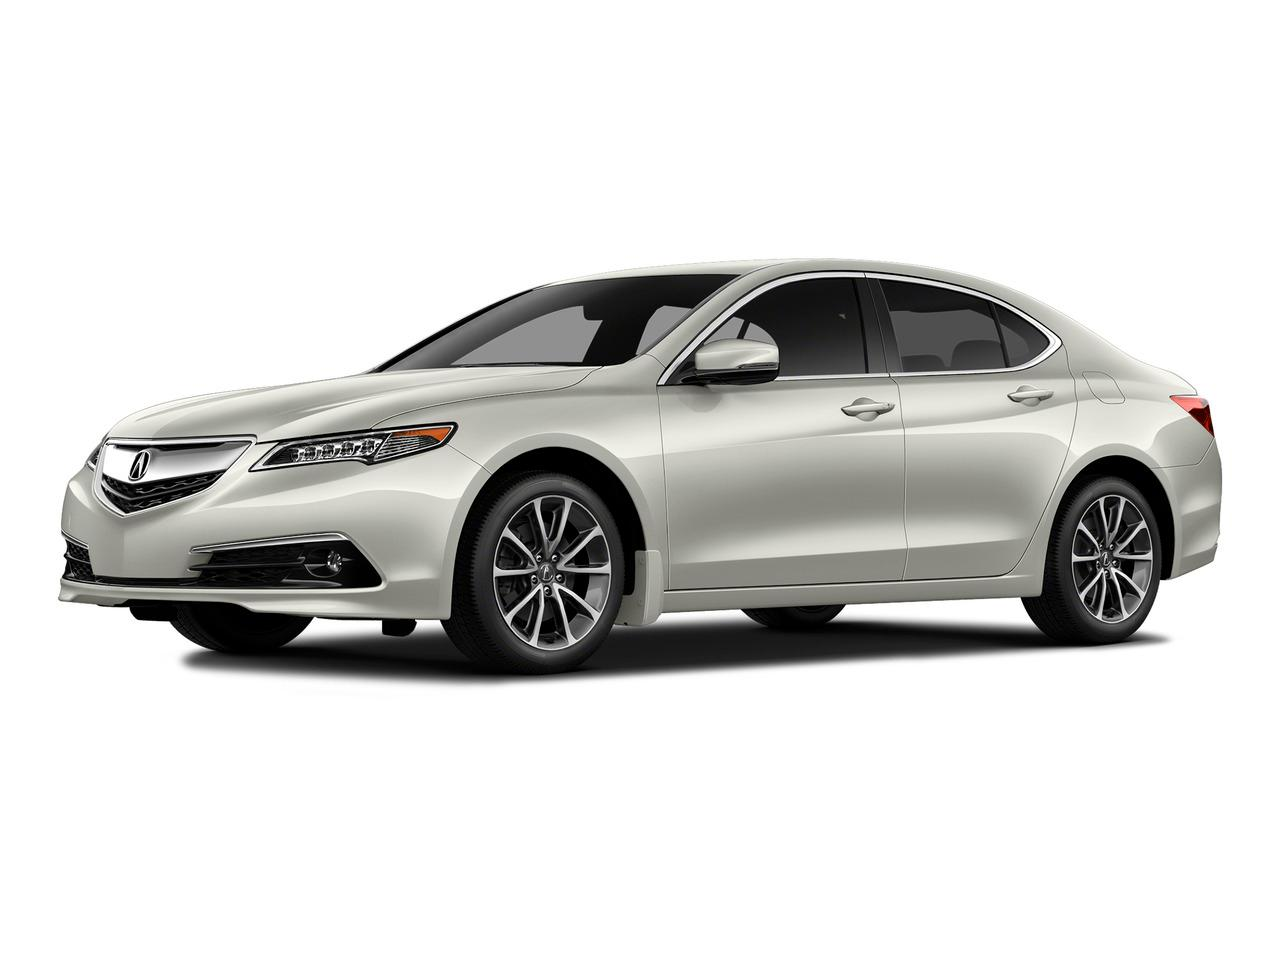 2015 Acura TLX Vehicle Photo in WATERTOWN, CT 06795-3318